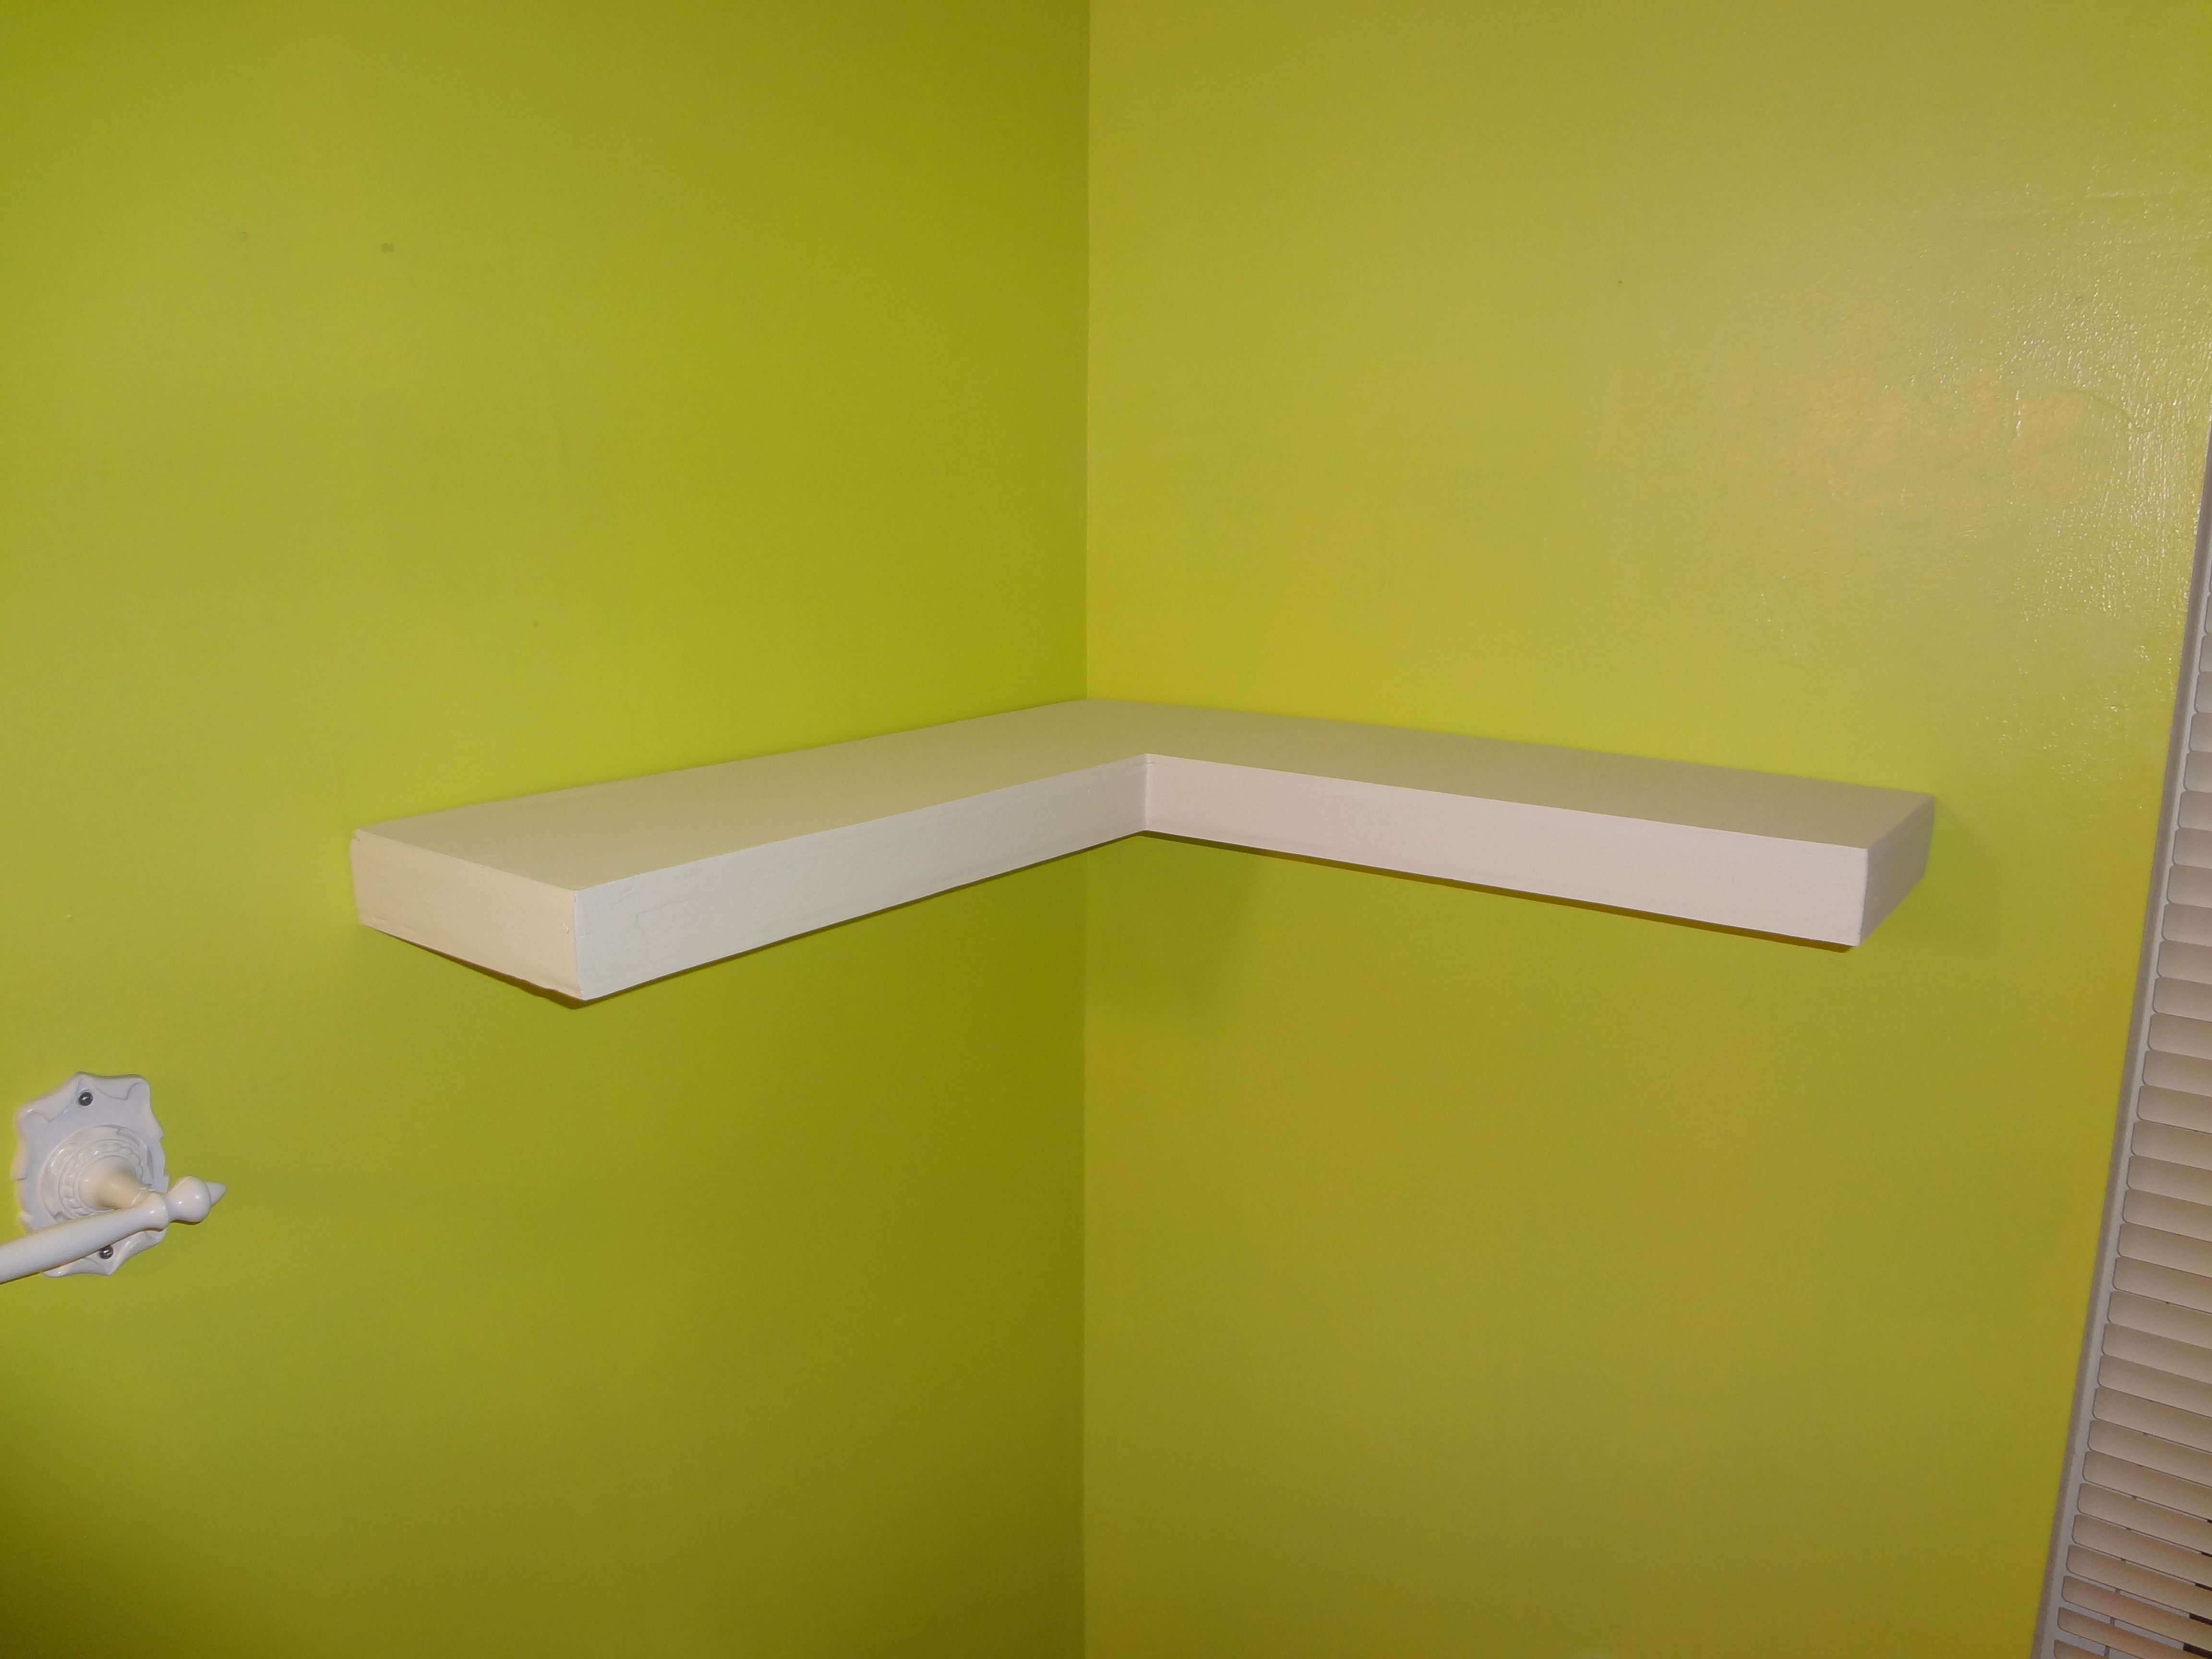 Do It Yourself Bookshelf Ideas: Pin By Massimo Rossetti On Misc. Ideas From WWW